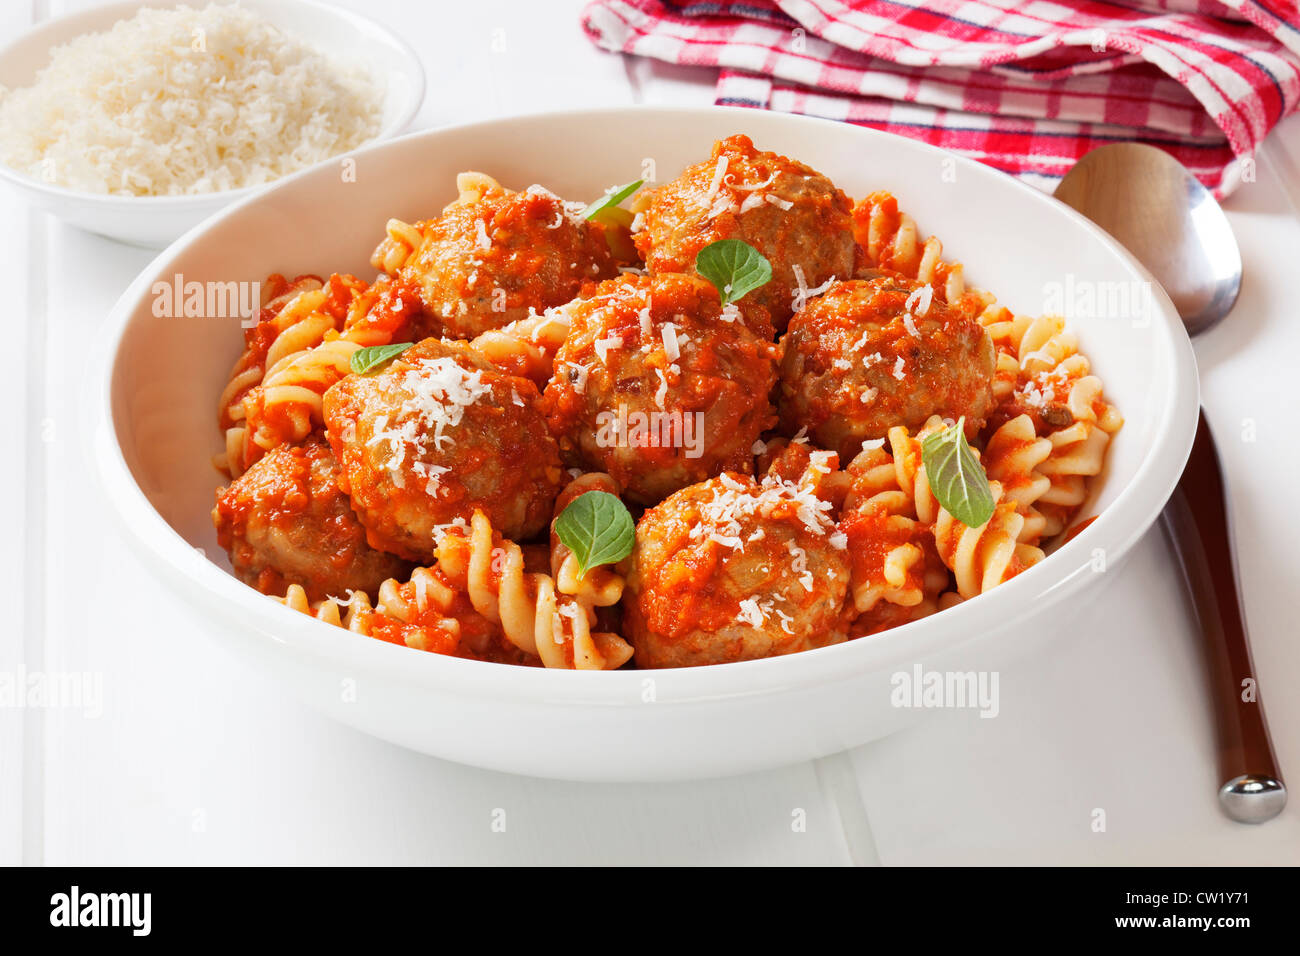 Meatballs with marinara, fusili pasta and parmesan cheese. Meatballs made from turkey mince. - Stock Image